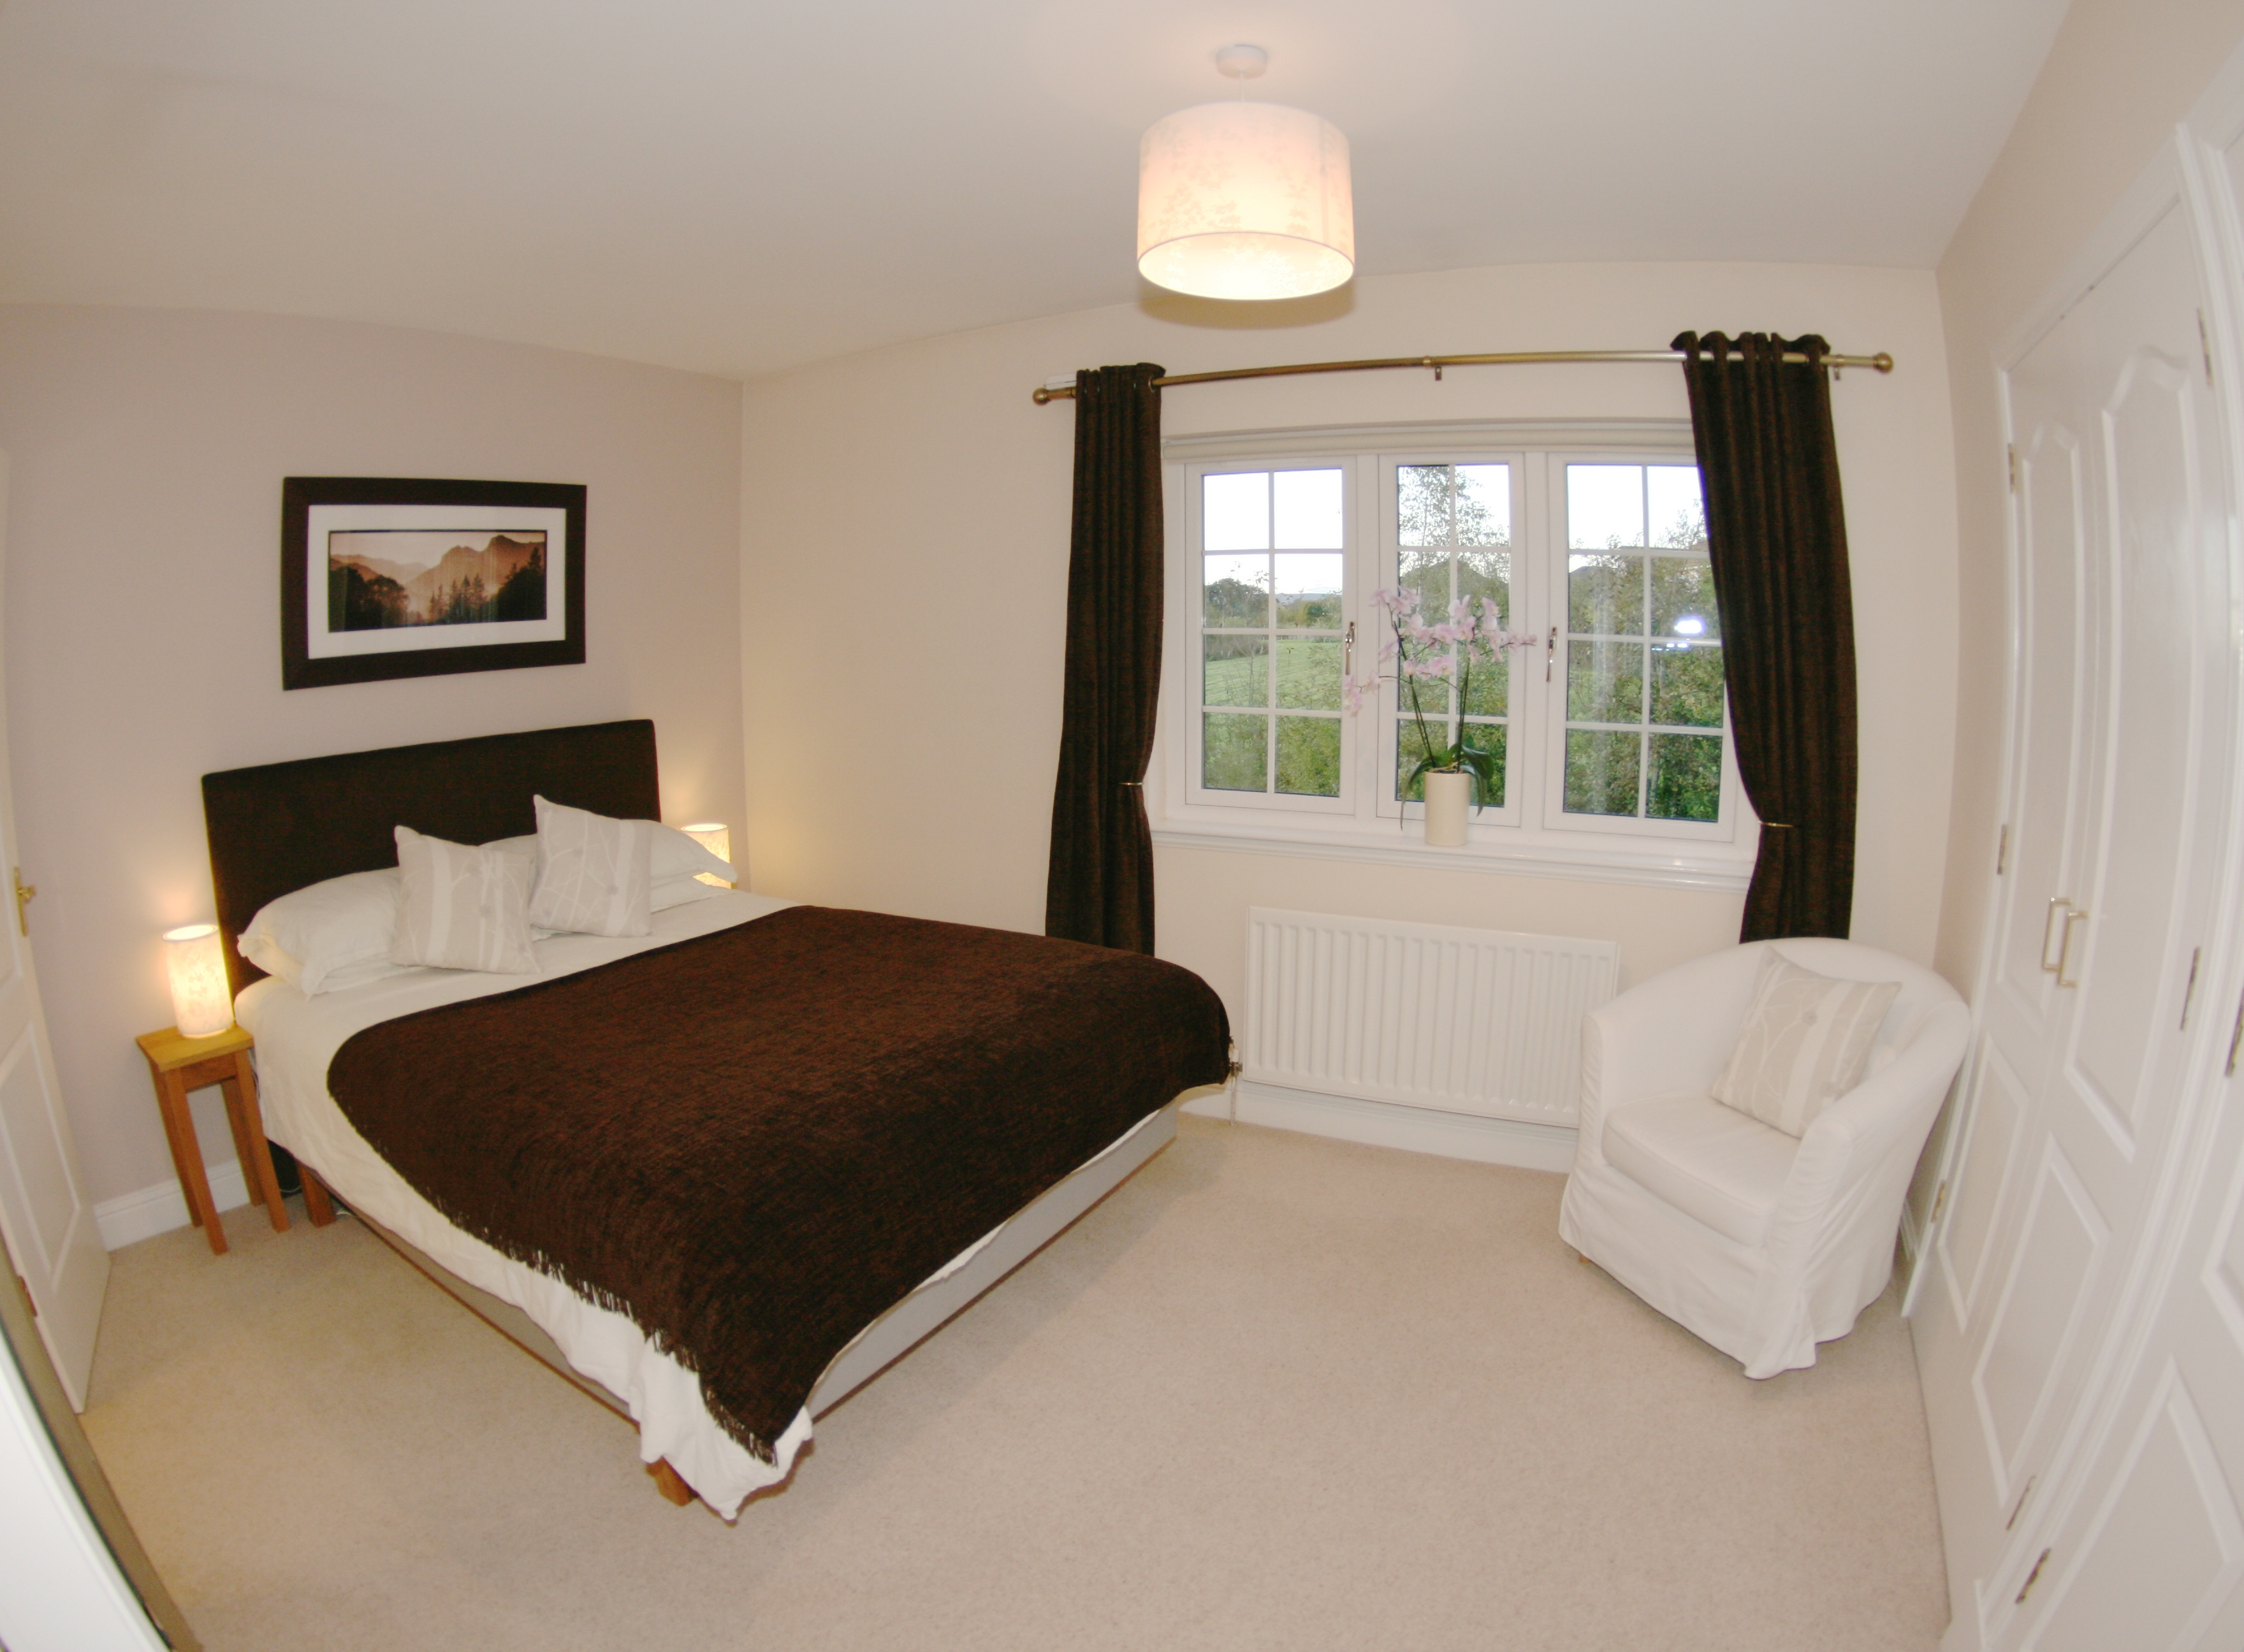 double bedroom with curtains drawn